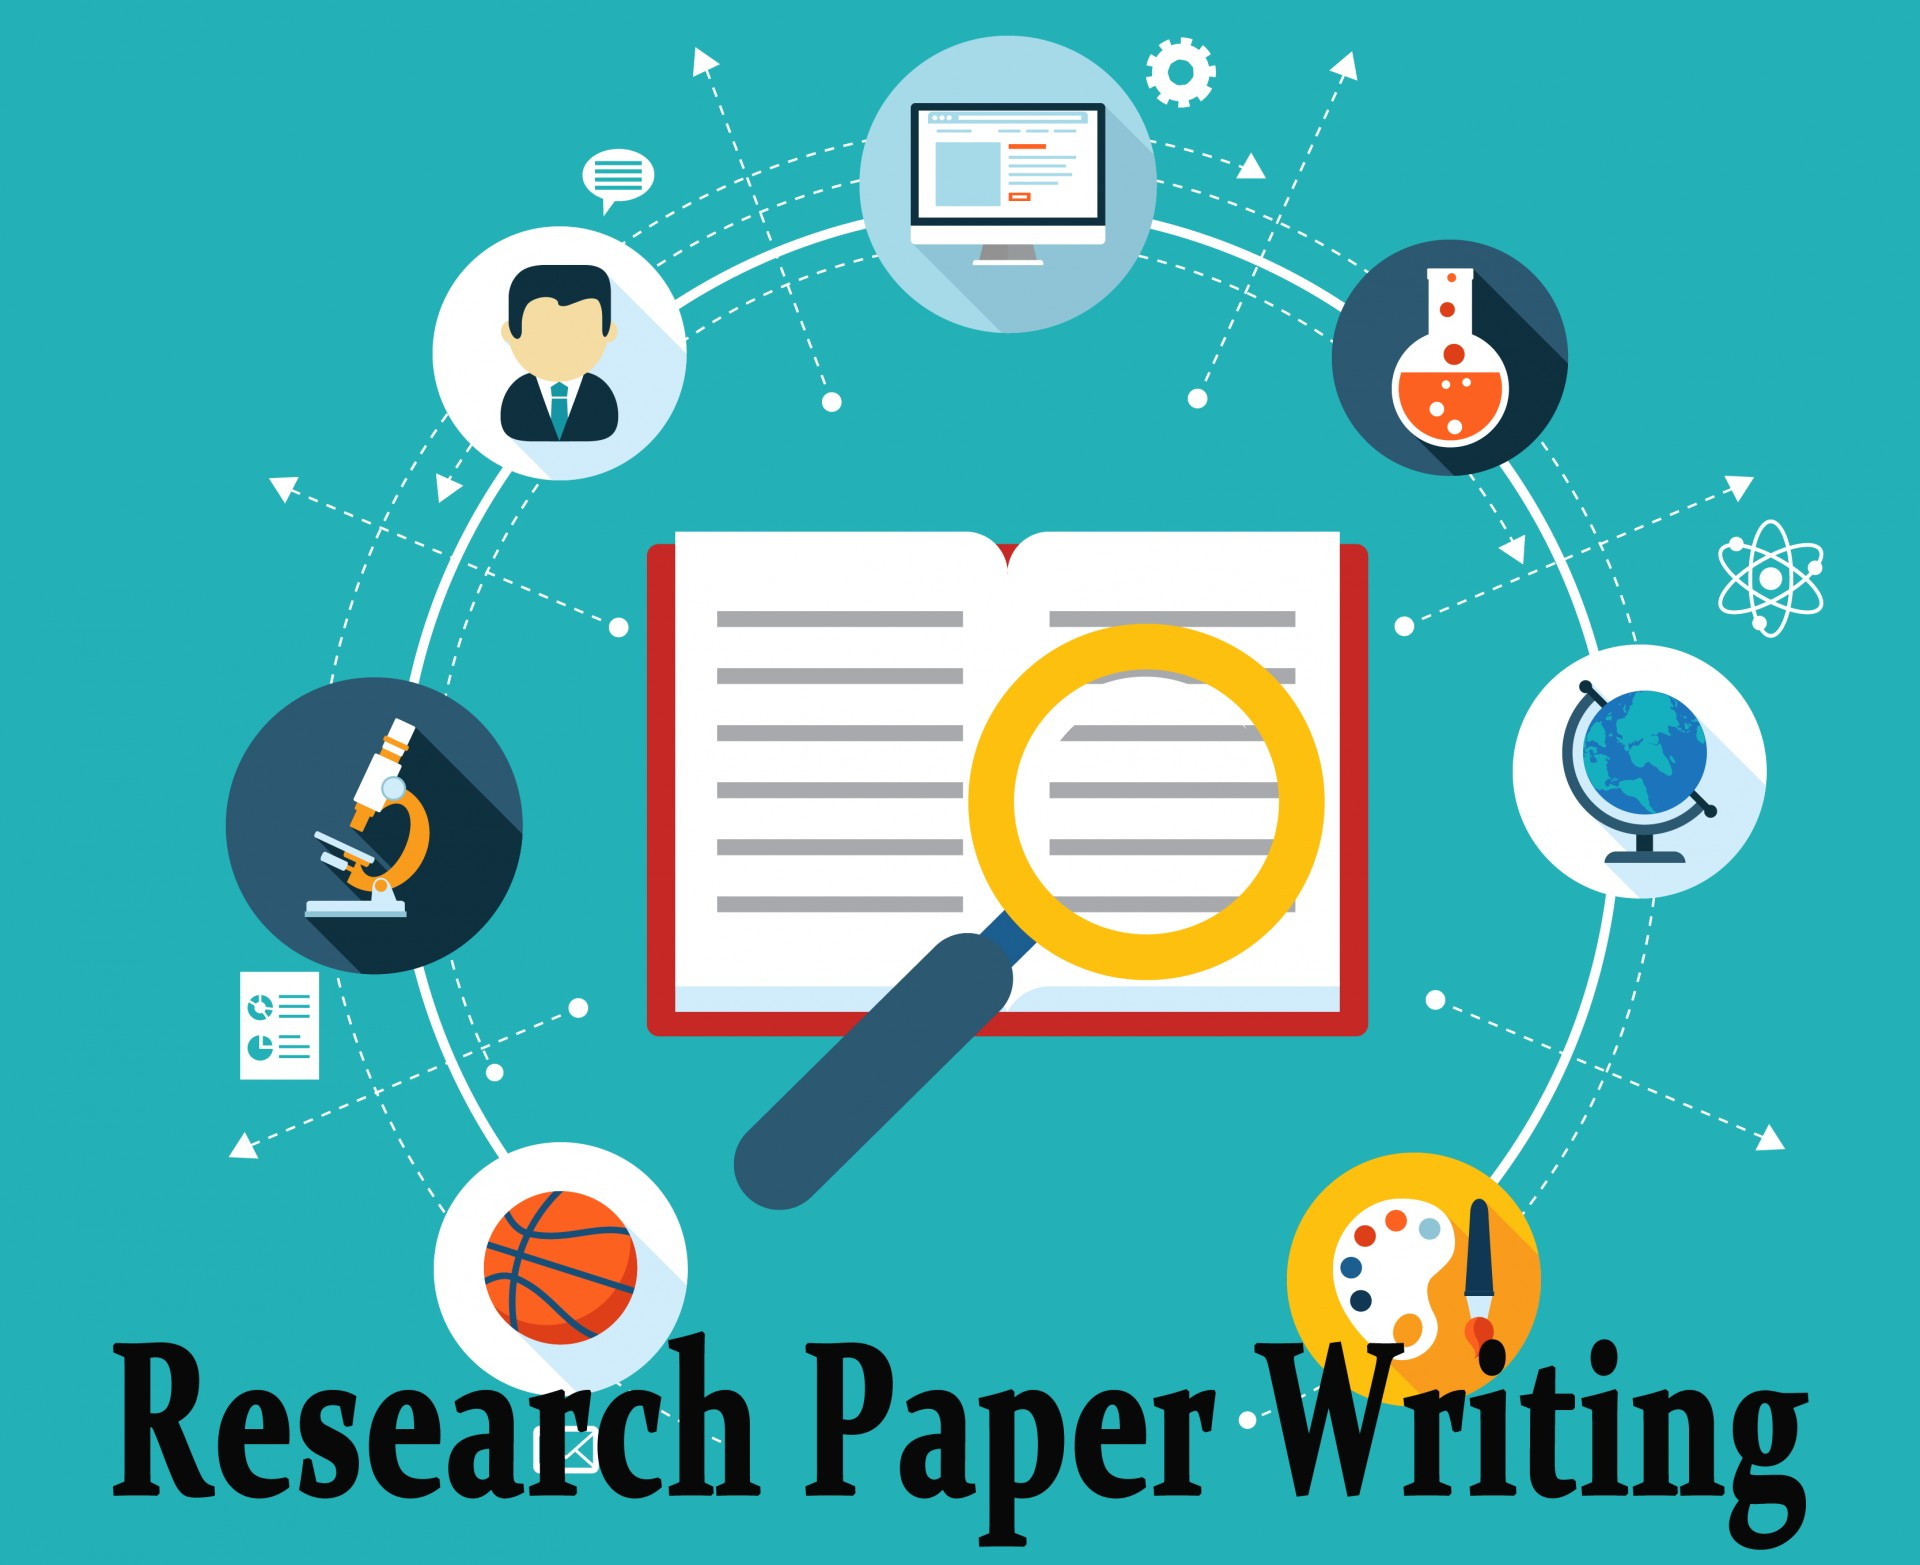 009 Writing The Research Paper 503 Effective Phenomenal Book Pdf Papers A Complete Guide Global Edition Abstract Ppt 1920